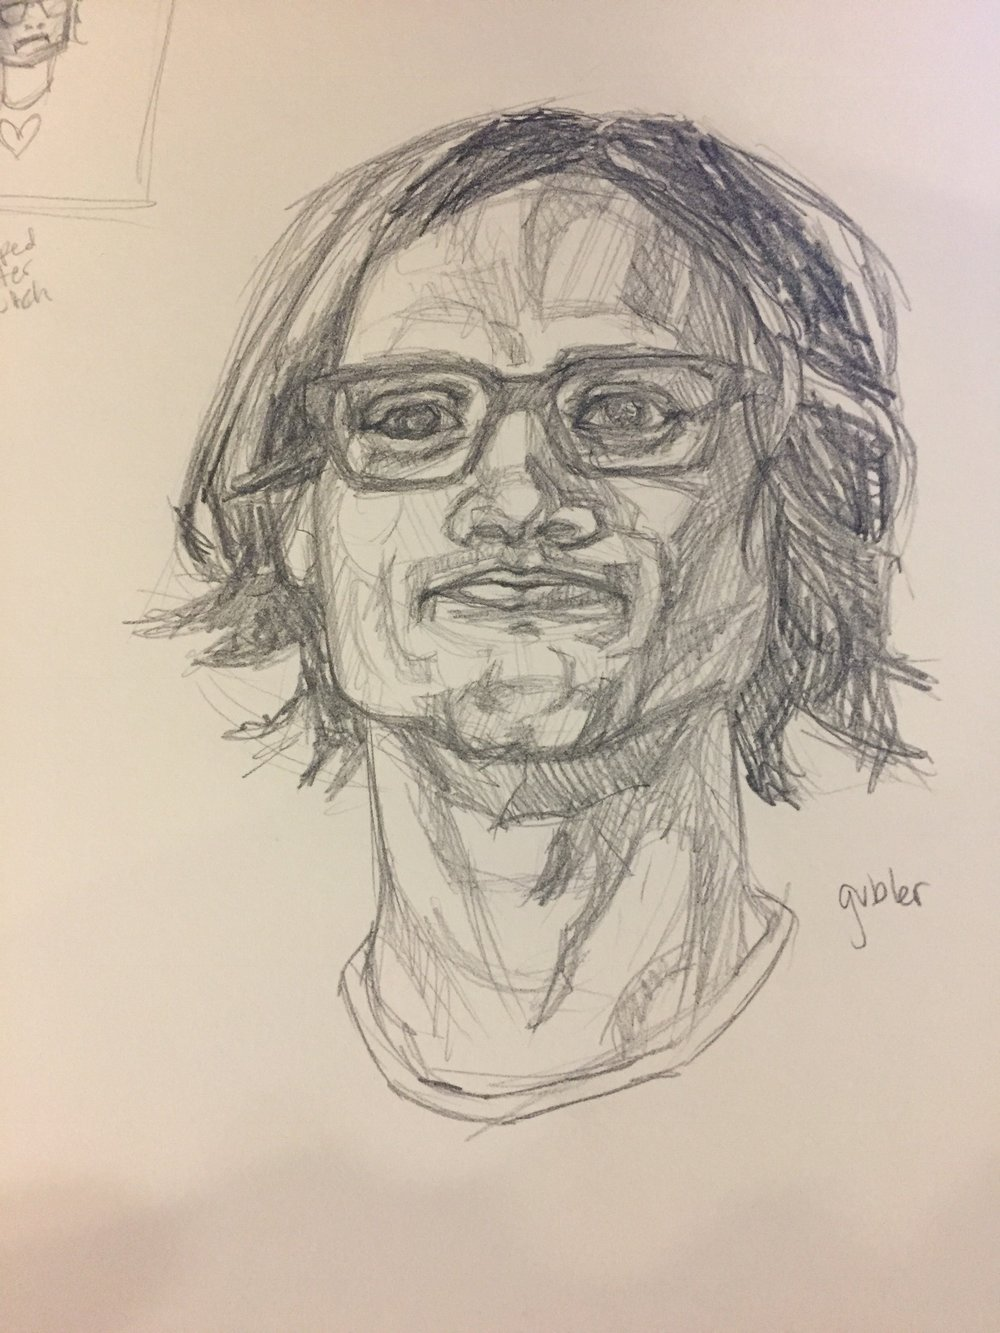 Speed sketch of Matthew Gray Gubler (I've been binge-watching Criminal Minds, okay?!)